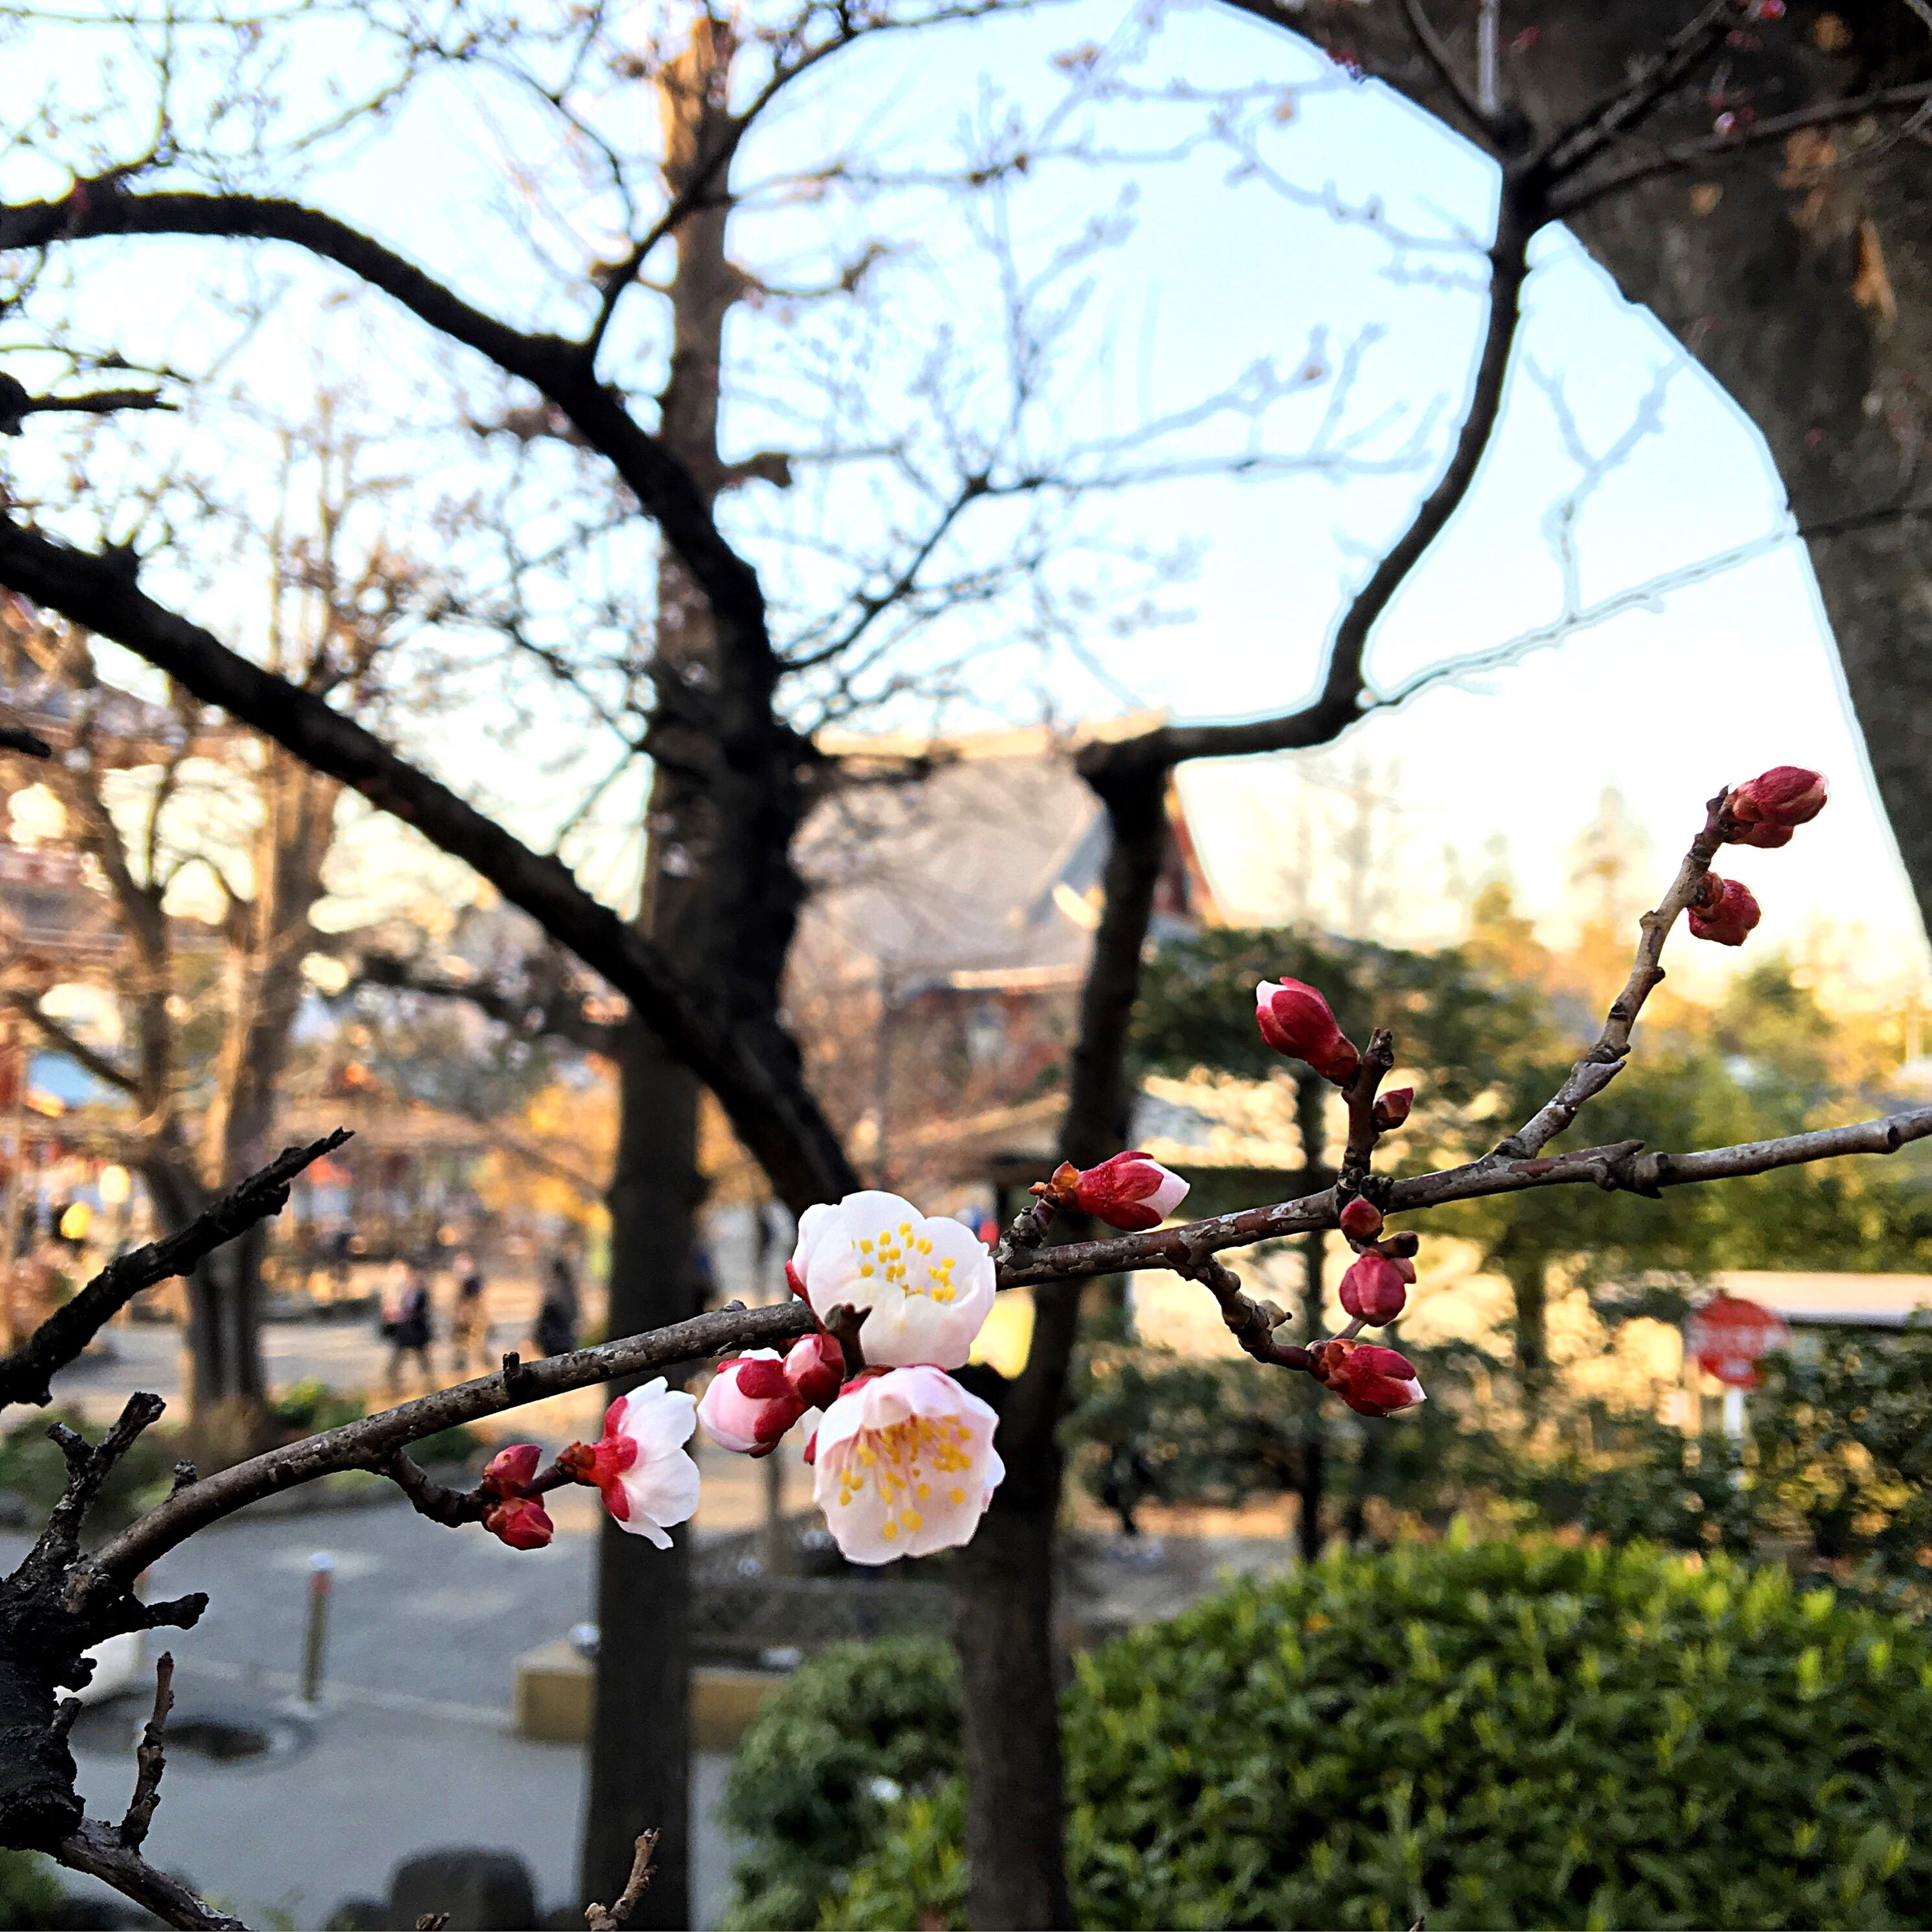 tree, flower, growth, branch, nature, no people, outdoors, freshness, sky, beauty in nature, day, low angle view, close-up, fragility, plum blossom